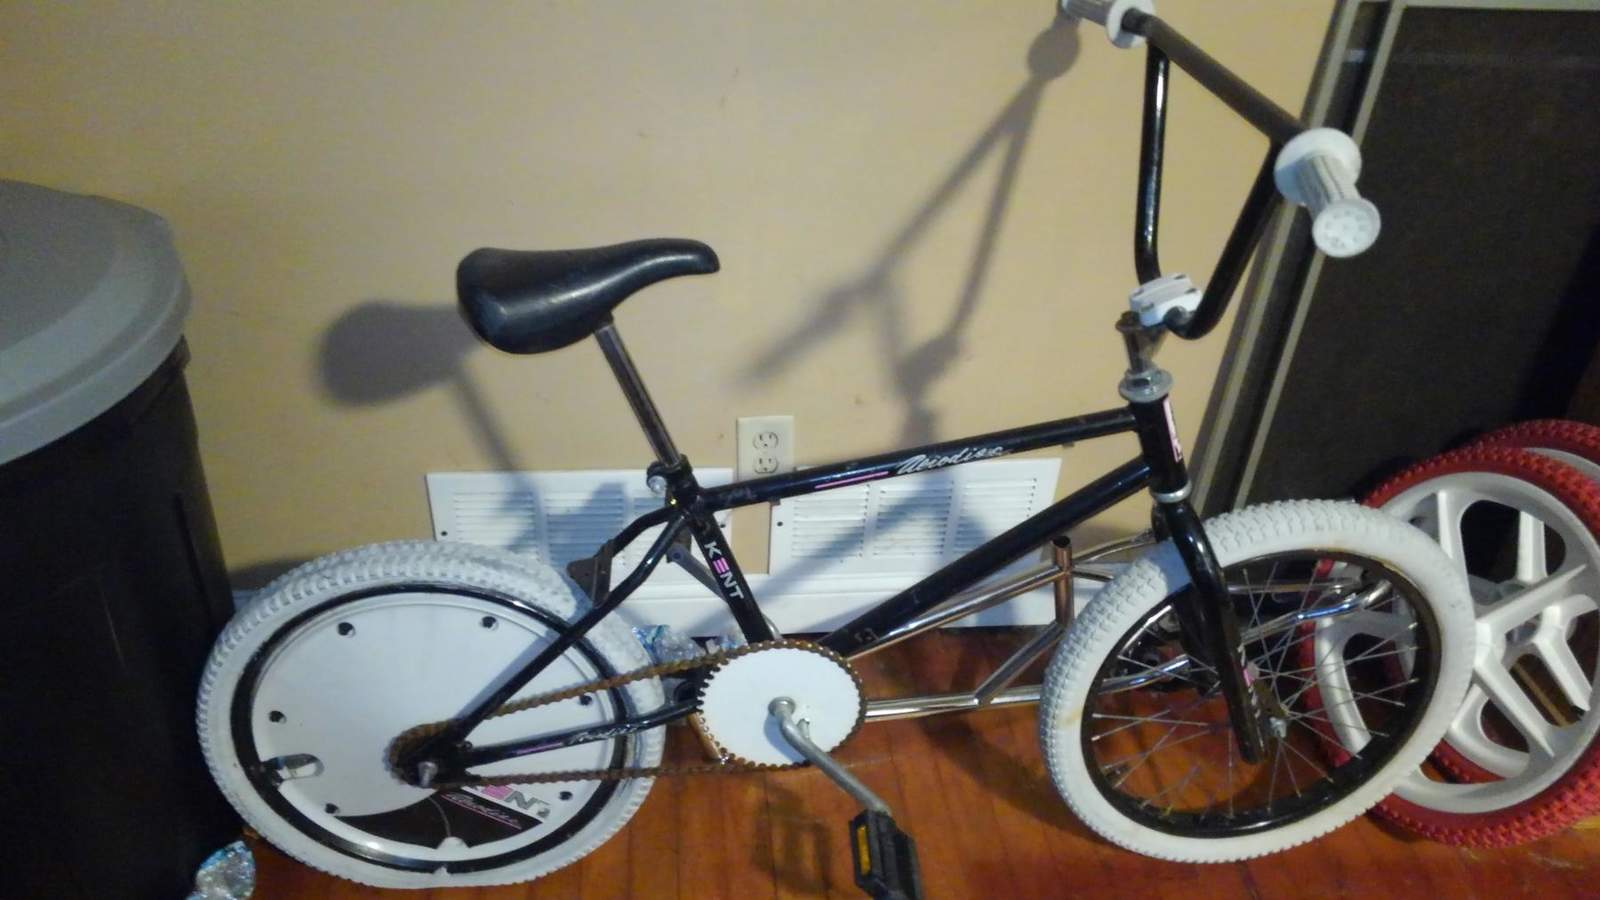 http://uploads.bmxmuseum.com/user-images/249774/kimg00155accbe8045_blowup5ad085931a.jpg